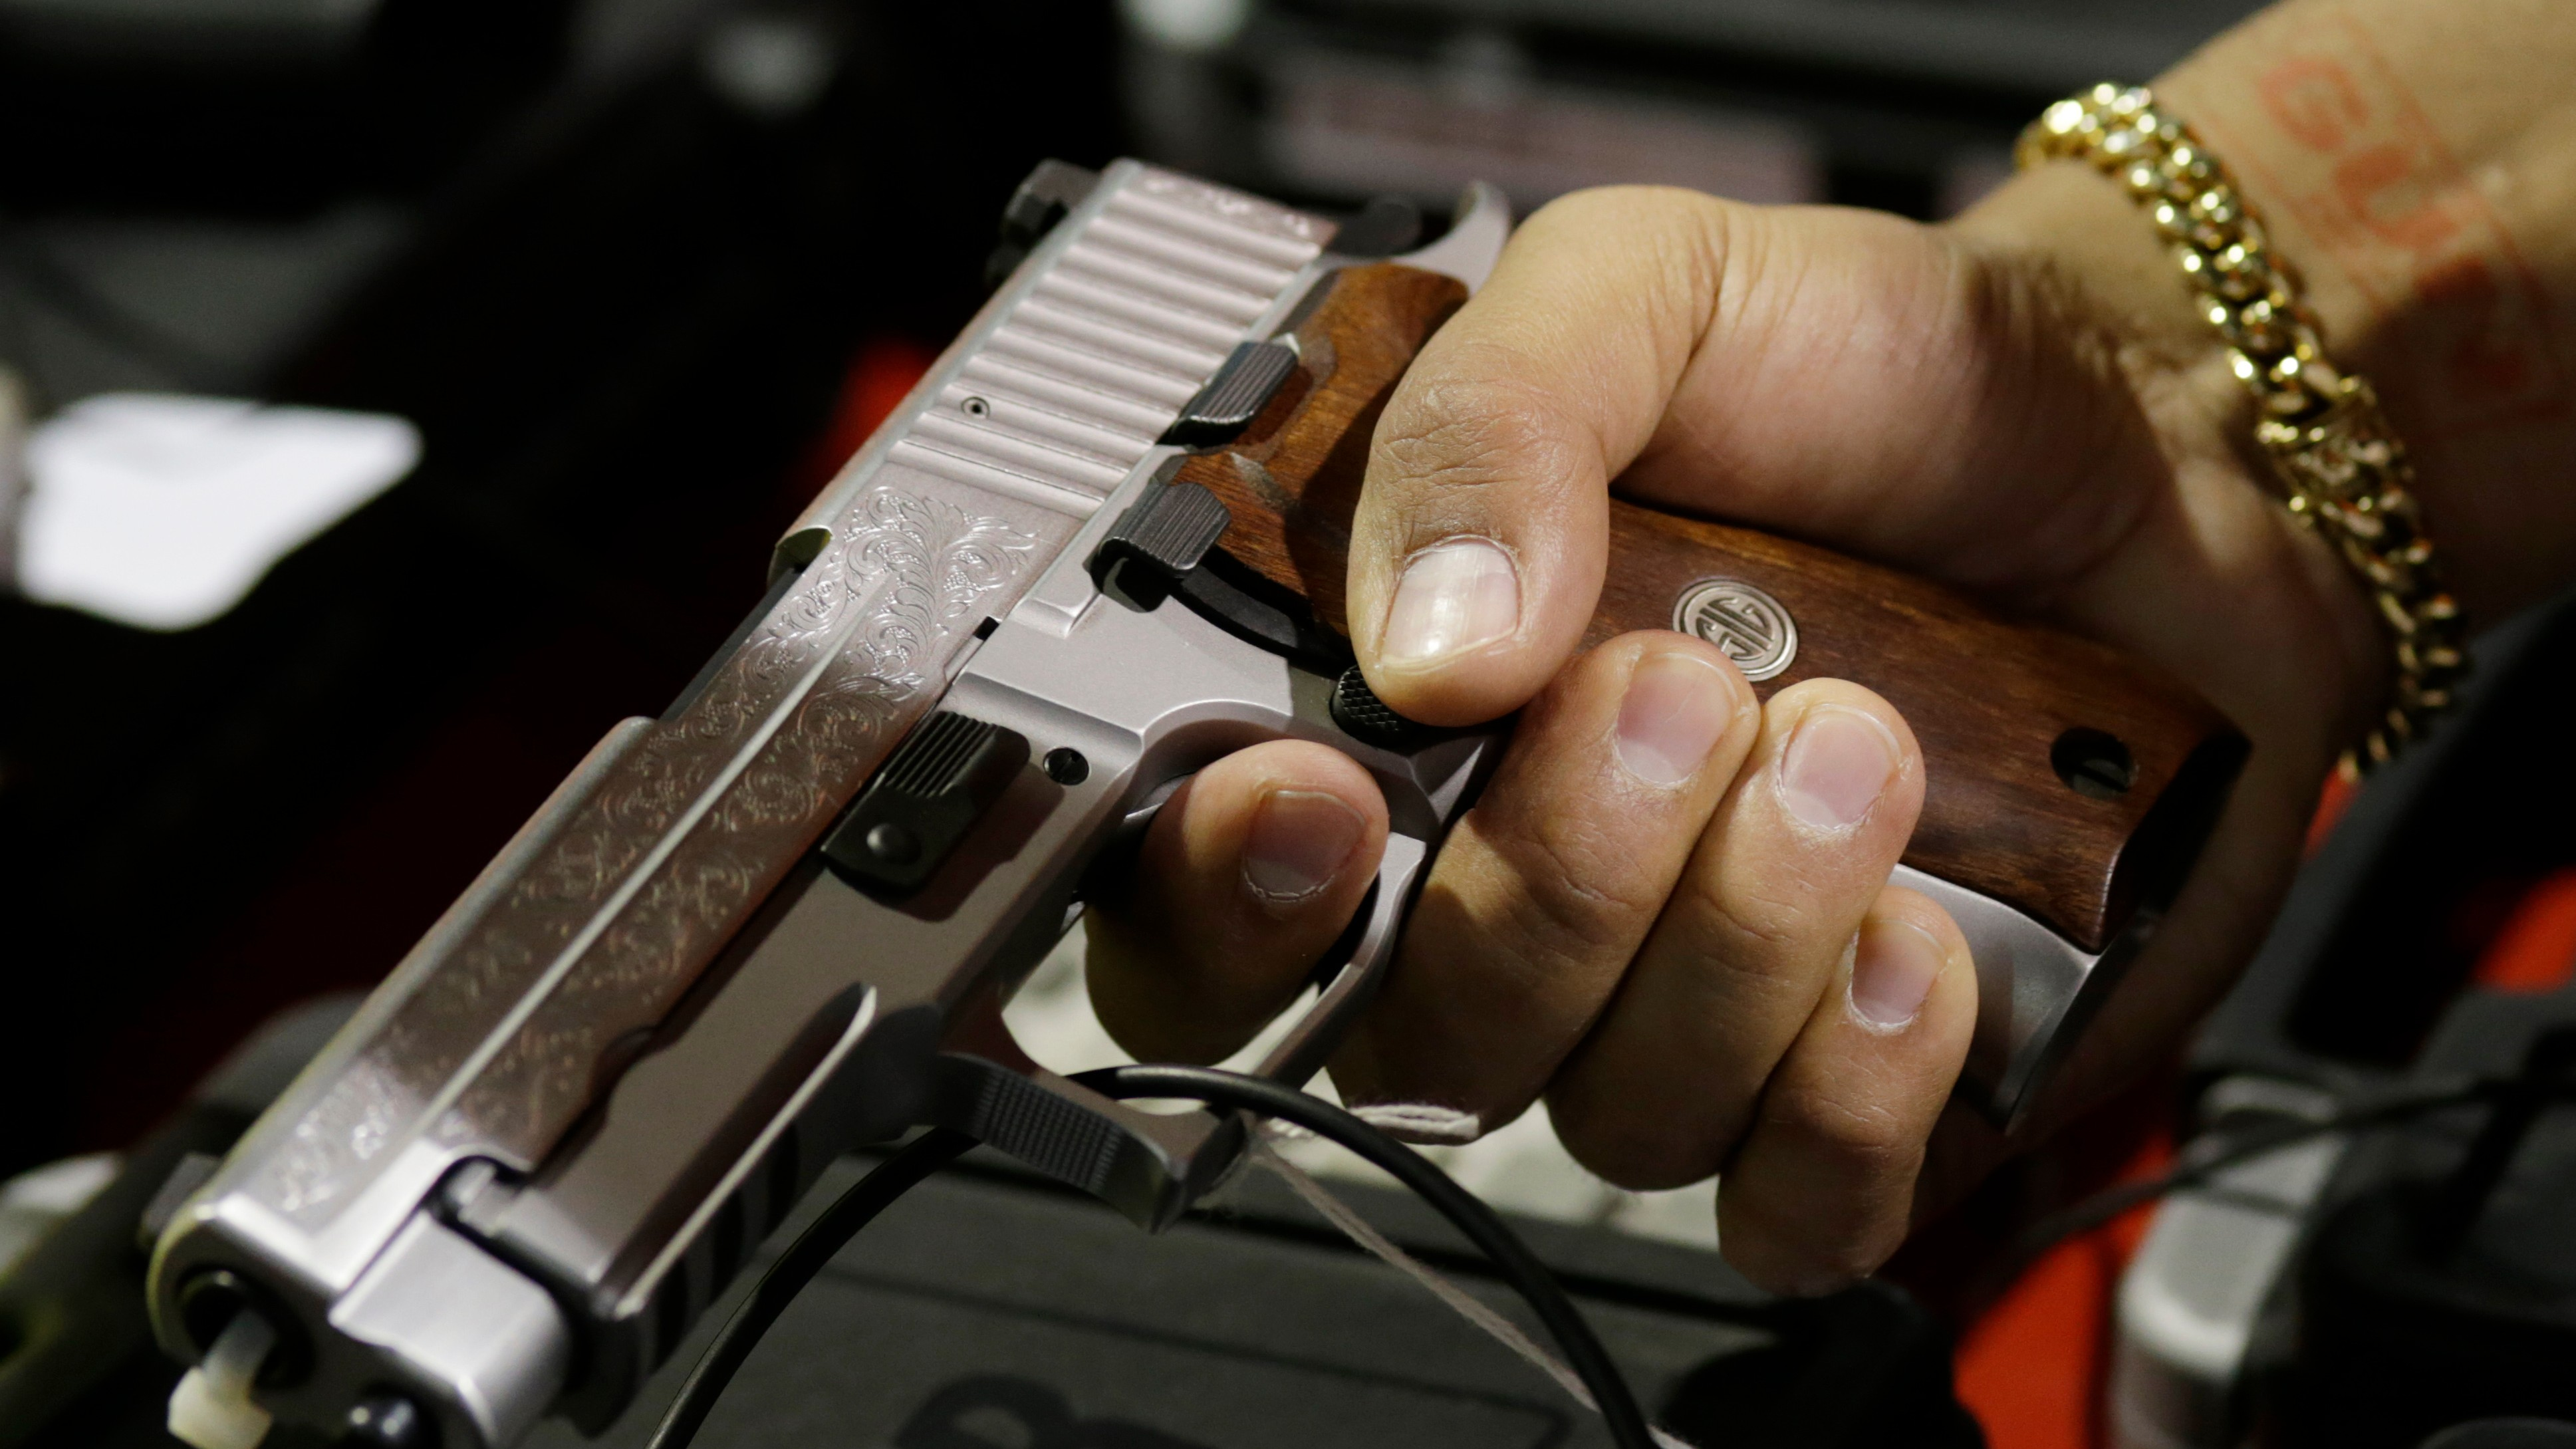 Florida Issued Concealed Carry Permits For A Year Without